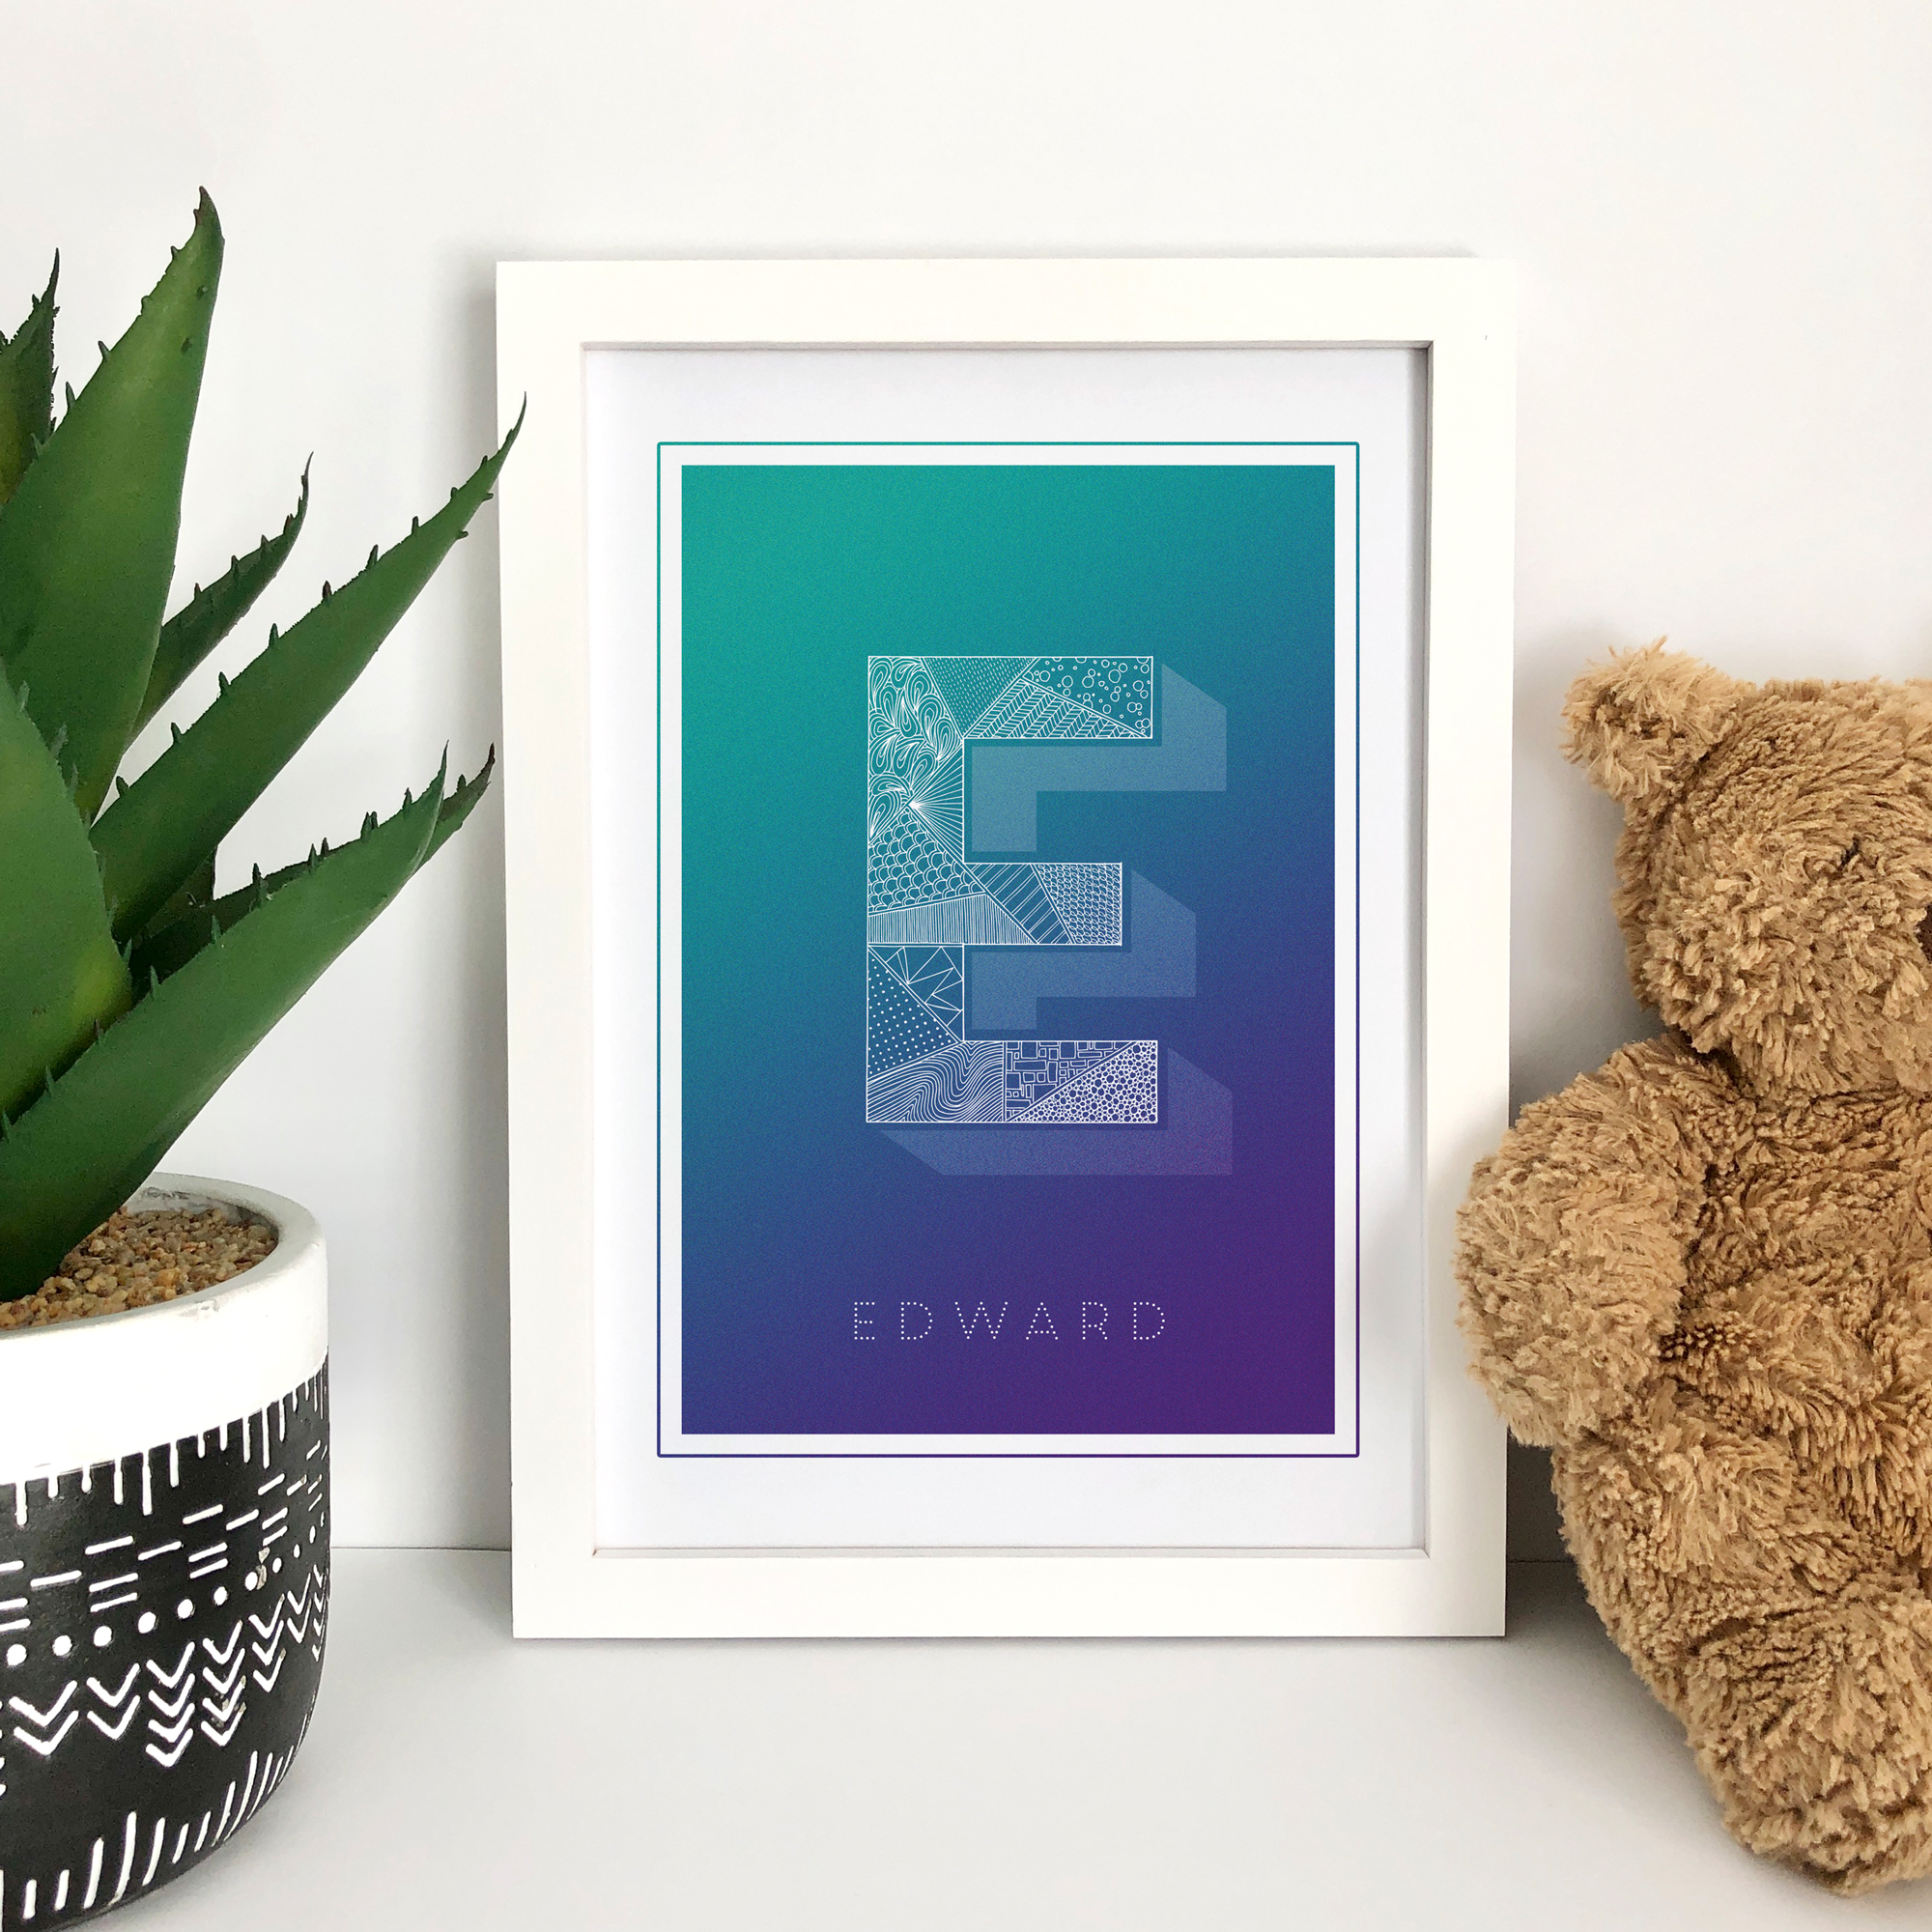 Personalised illustrated initial art print, featuring zentangle inspired patterns and gorgeous bright vibrant backgrounds. A-Z available.